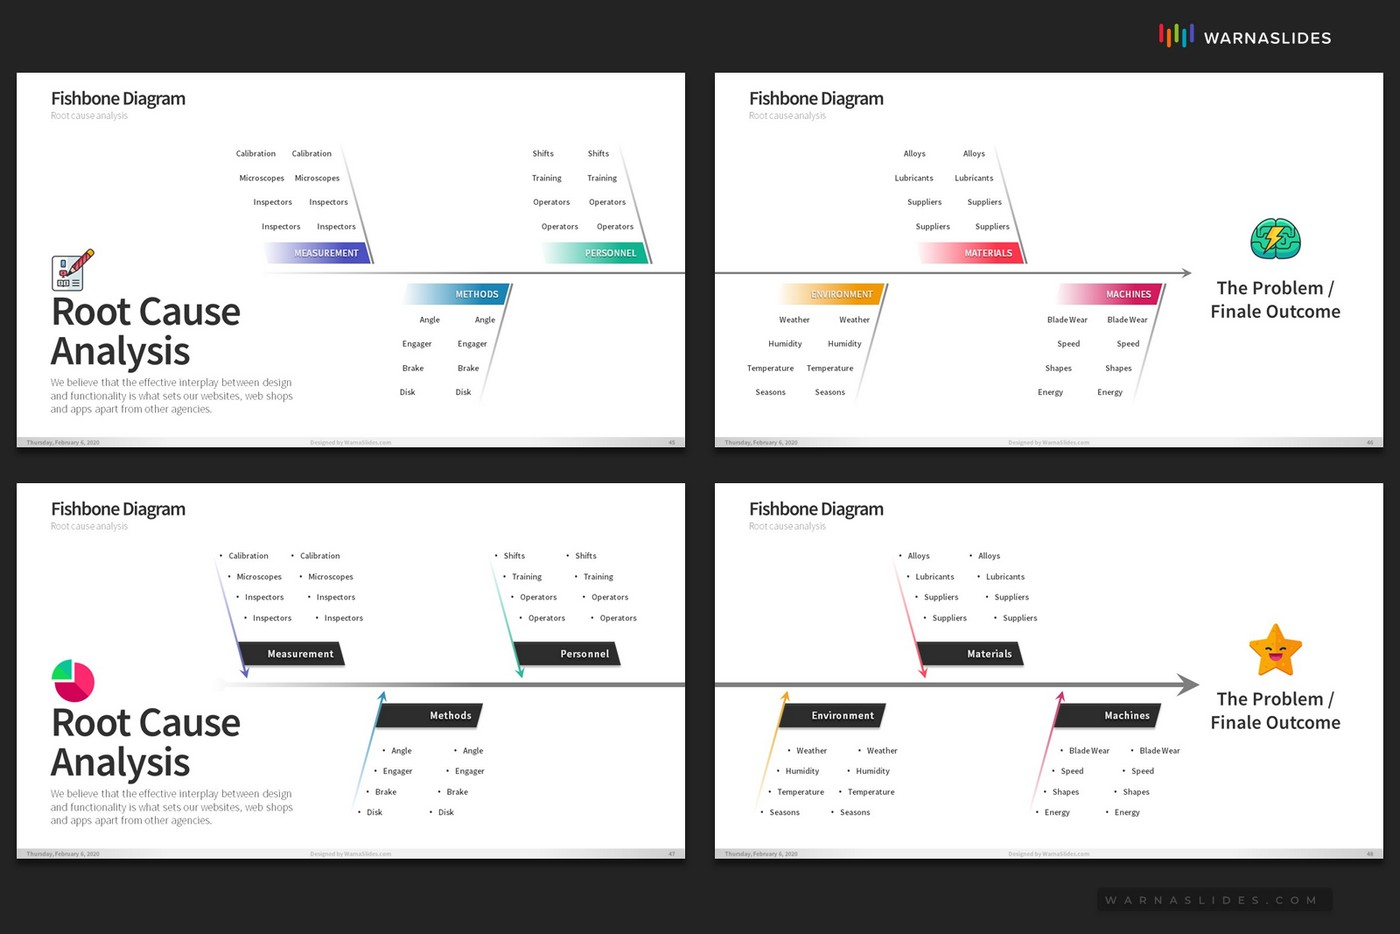 Fishbone-Ishikawa-Root-Cause-Analysis-Diagram-PowerPoint-Template-for-Business-Pitch-Deck-Professional-Creative-PowerPoint-Icons-013